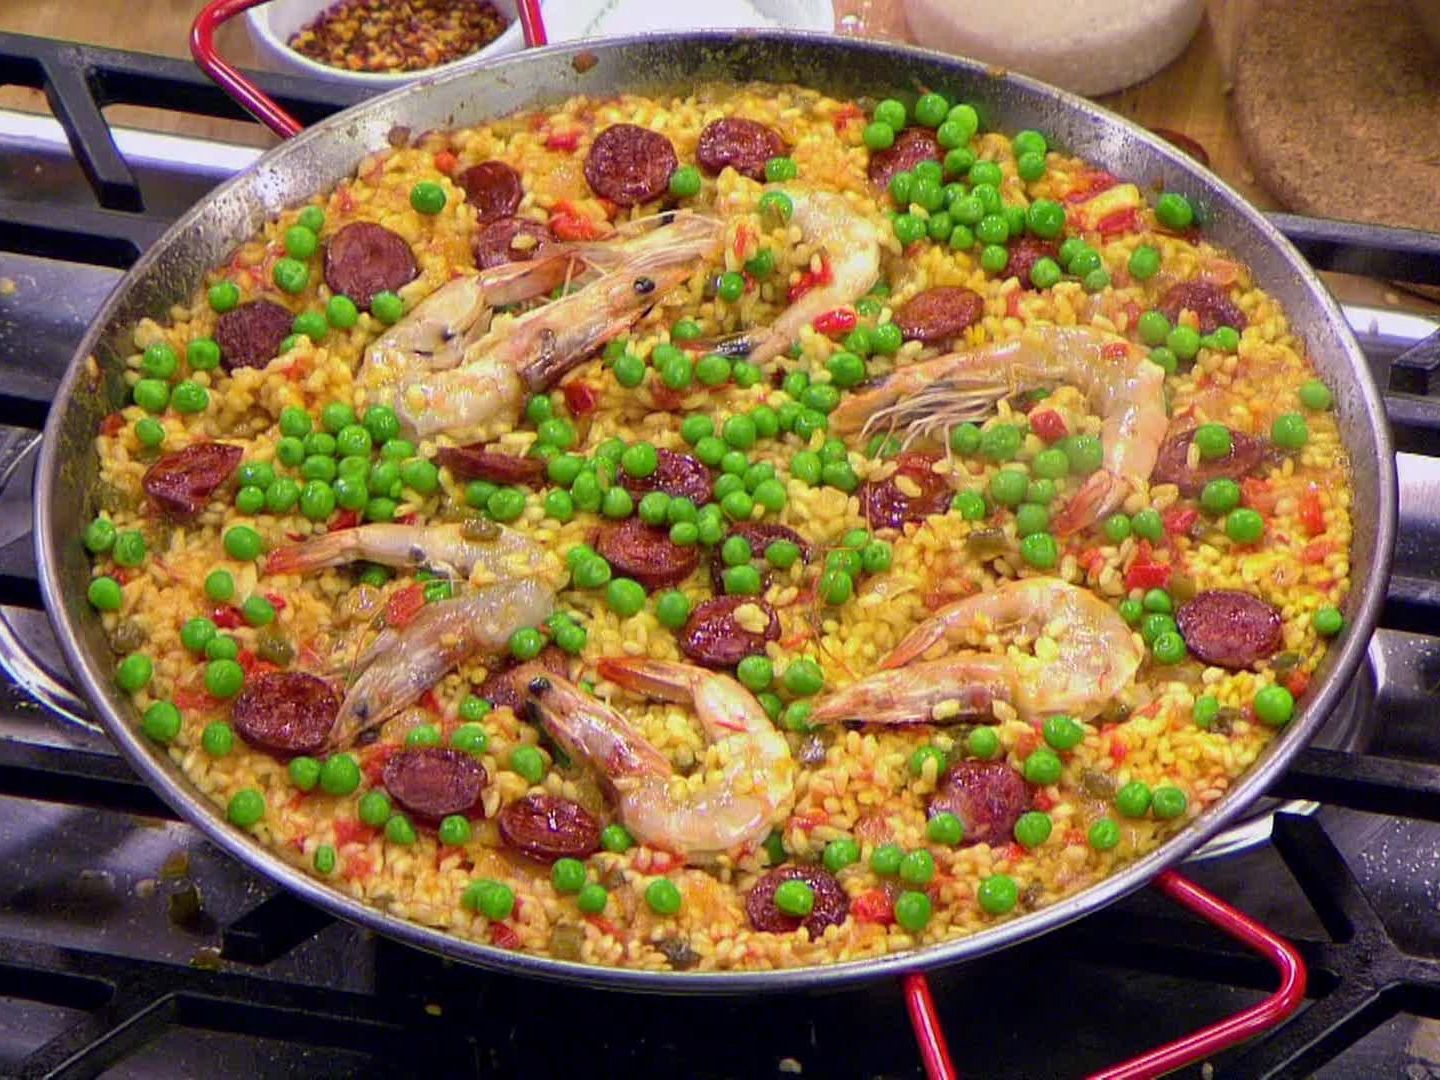 Seafood and chorizo paella recipe paella recipes and food get this all star easy to follow seafood and chorizo paella recipe forumfinder Images